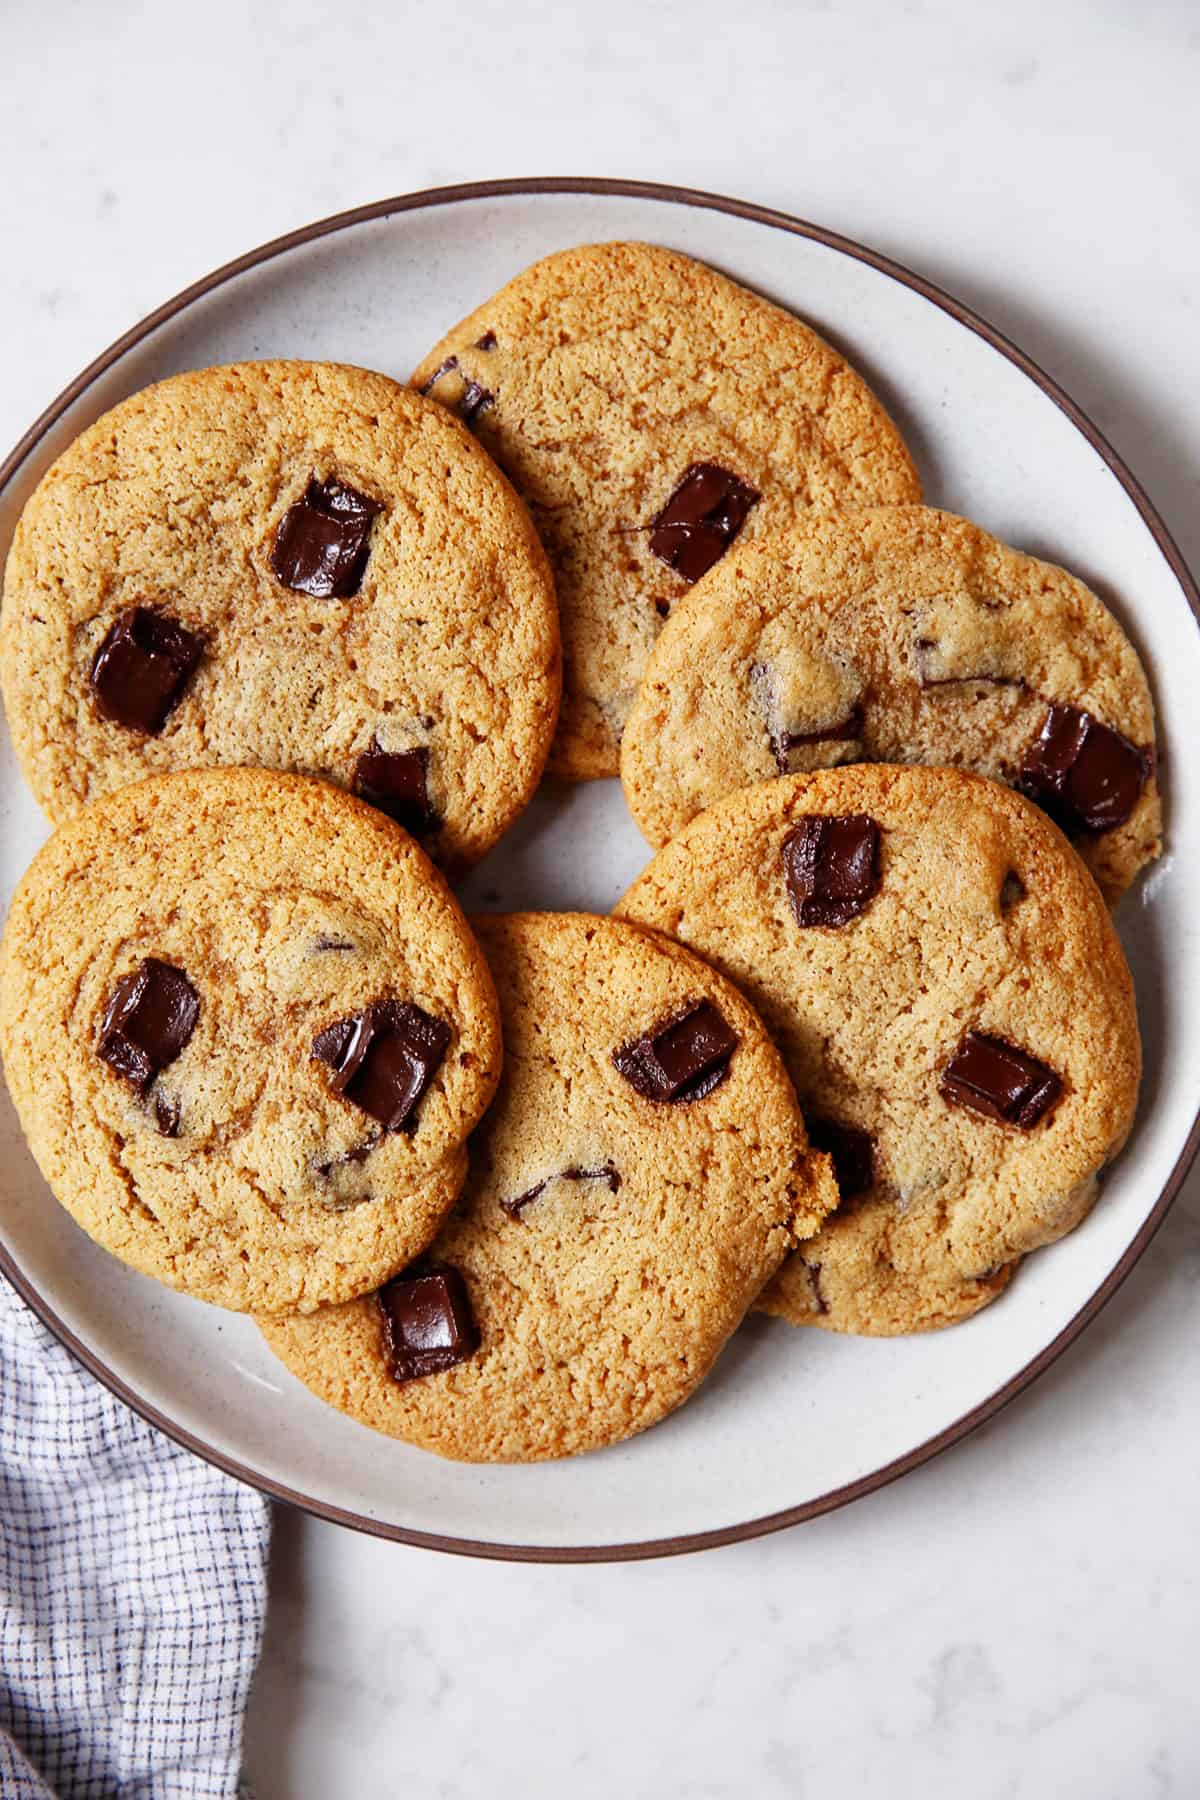 gluten free chocolate chip cookies on a plate